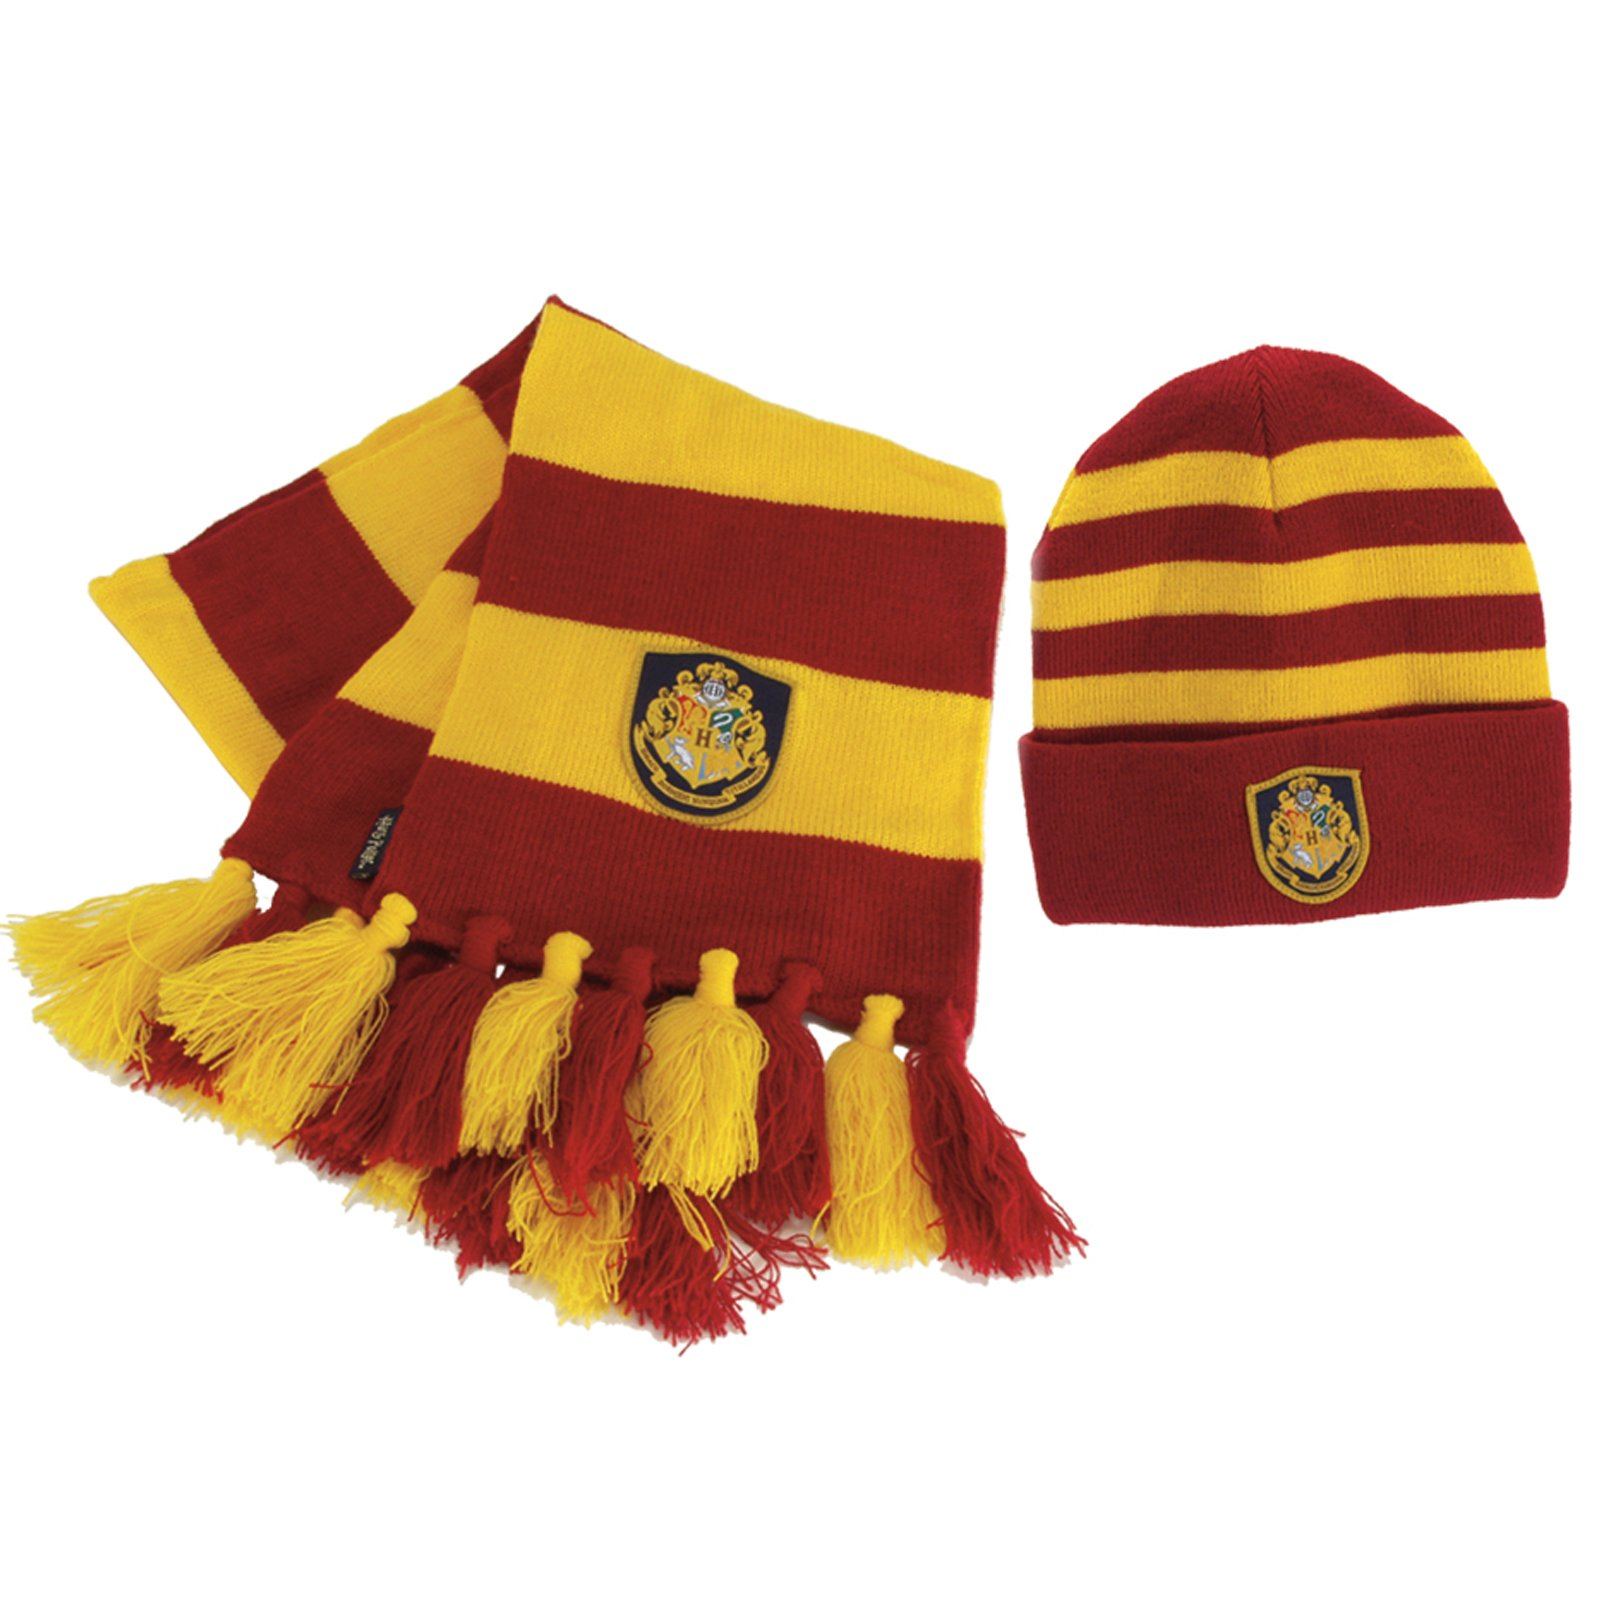 HARRY POTTER HOGWARTS KNIT SCARF AND HAT